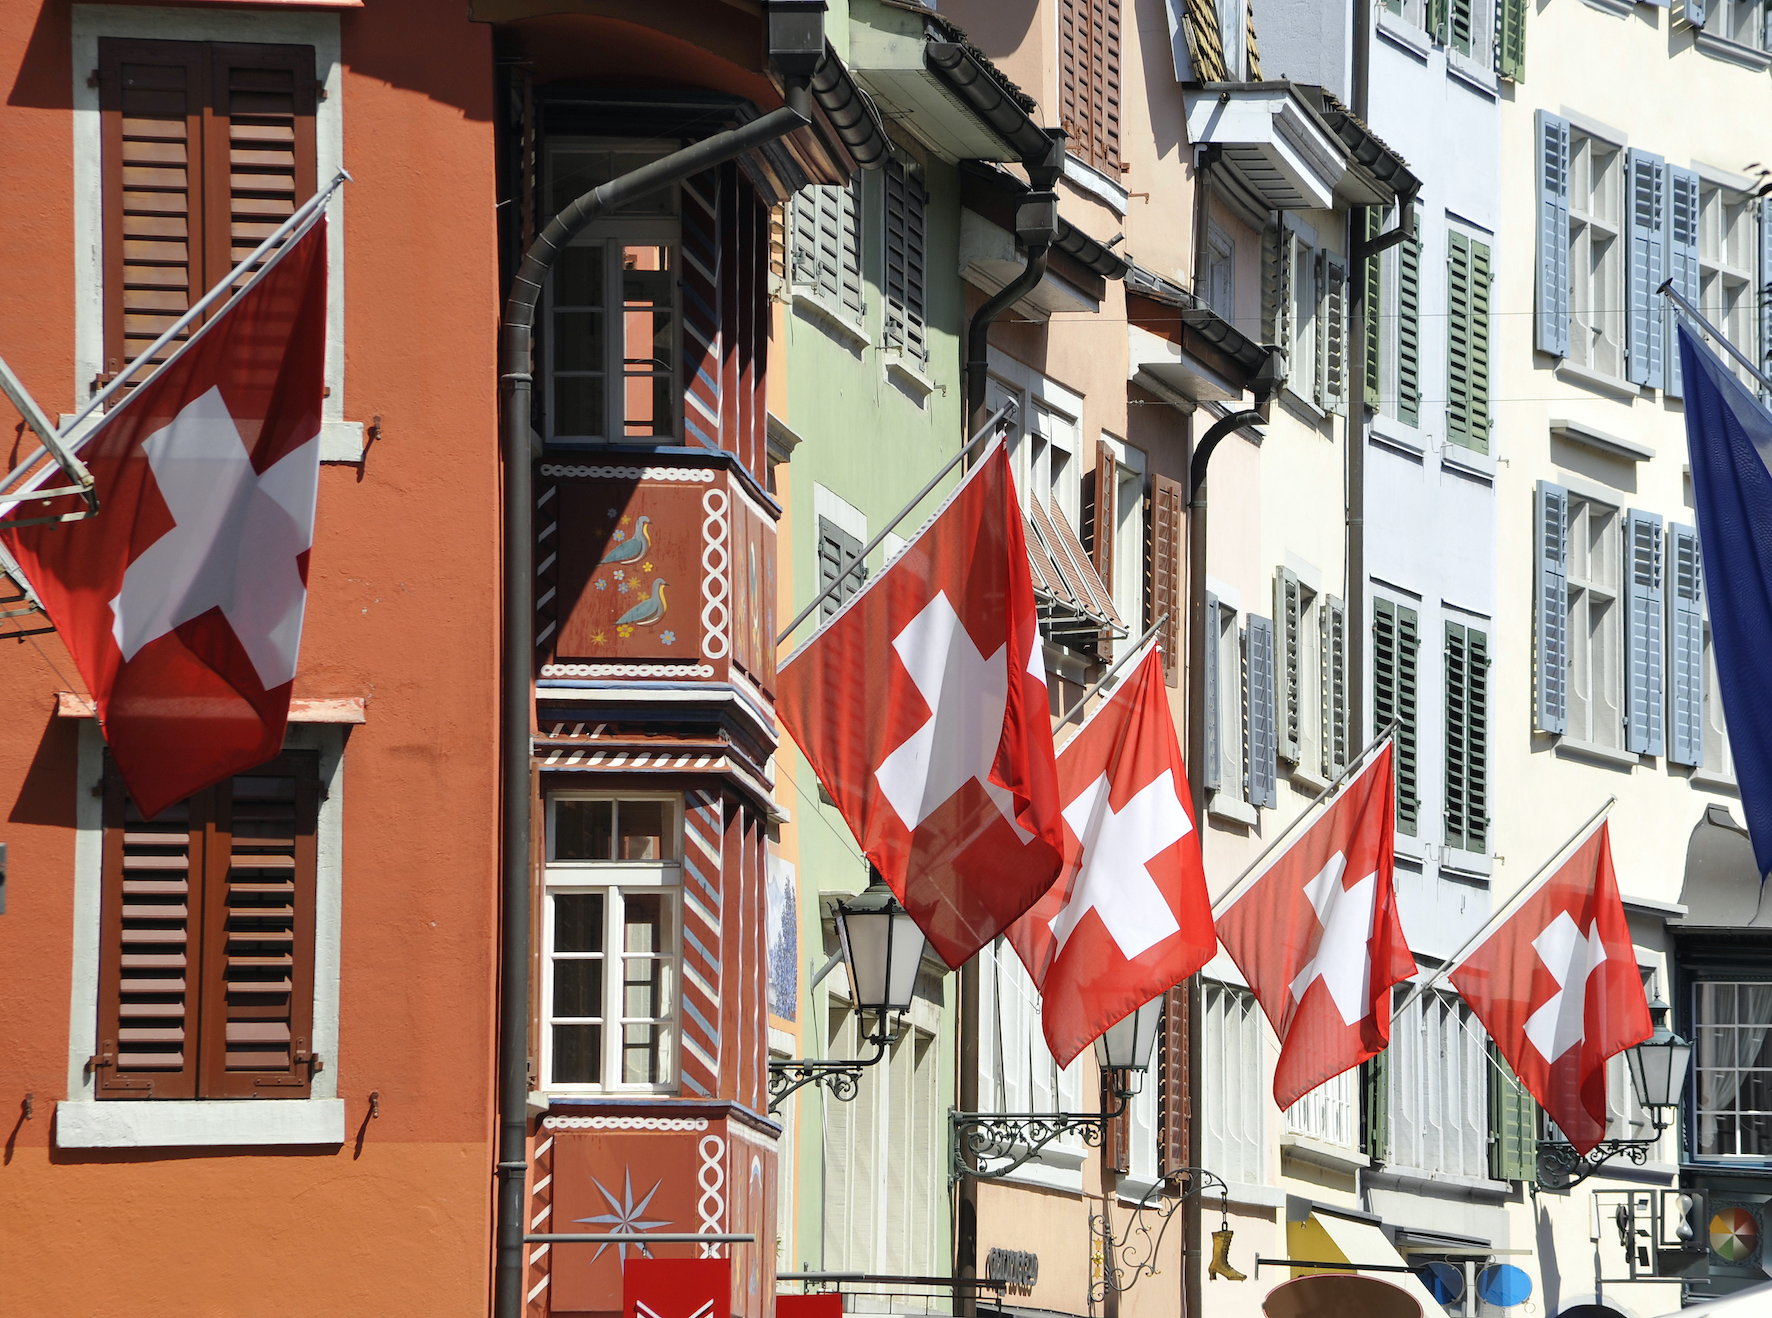 Amendment of the MoU - Mutual Recognition of Funds between Switzerland and Hong Kong